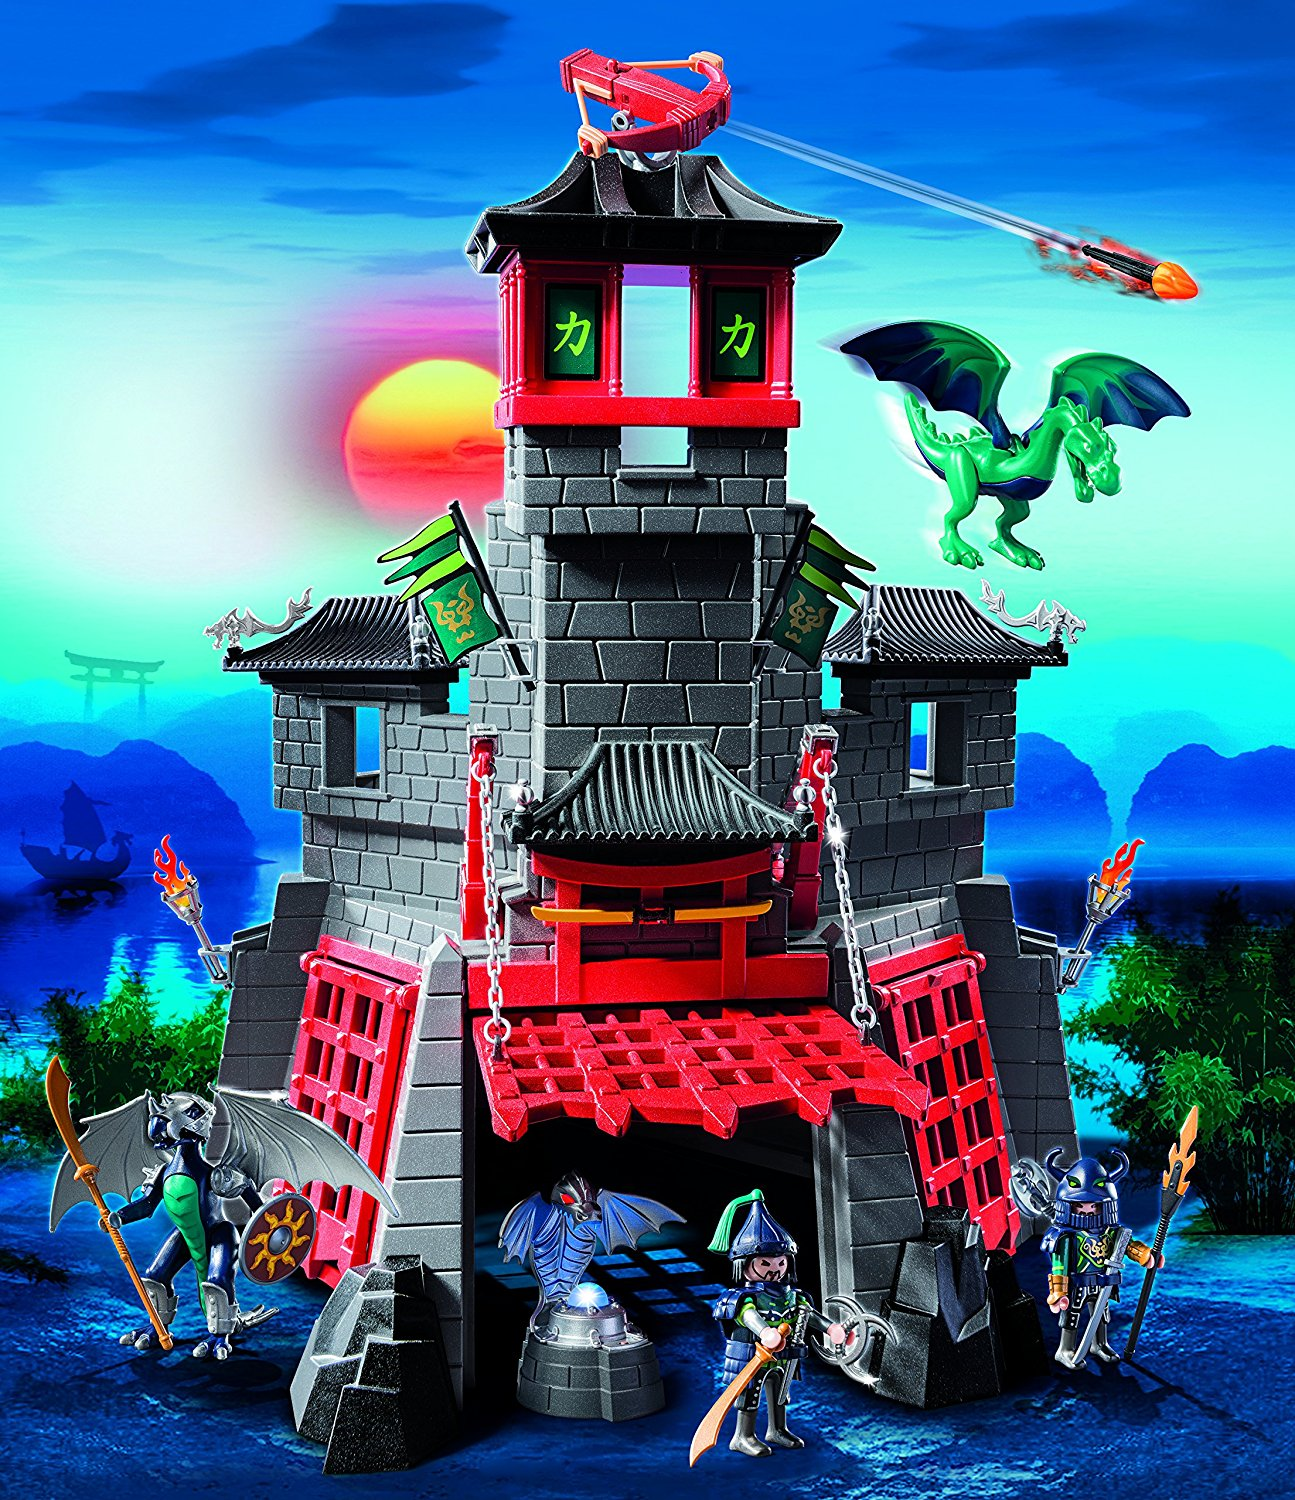 Citadelle secrète du dragon Playmobil 5480